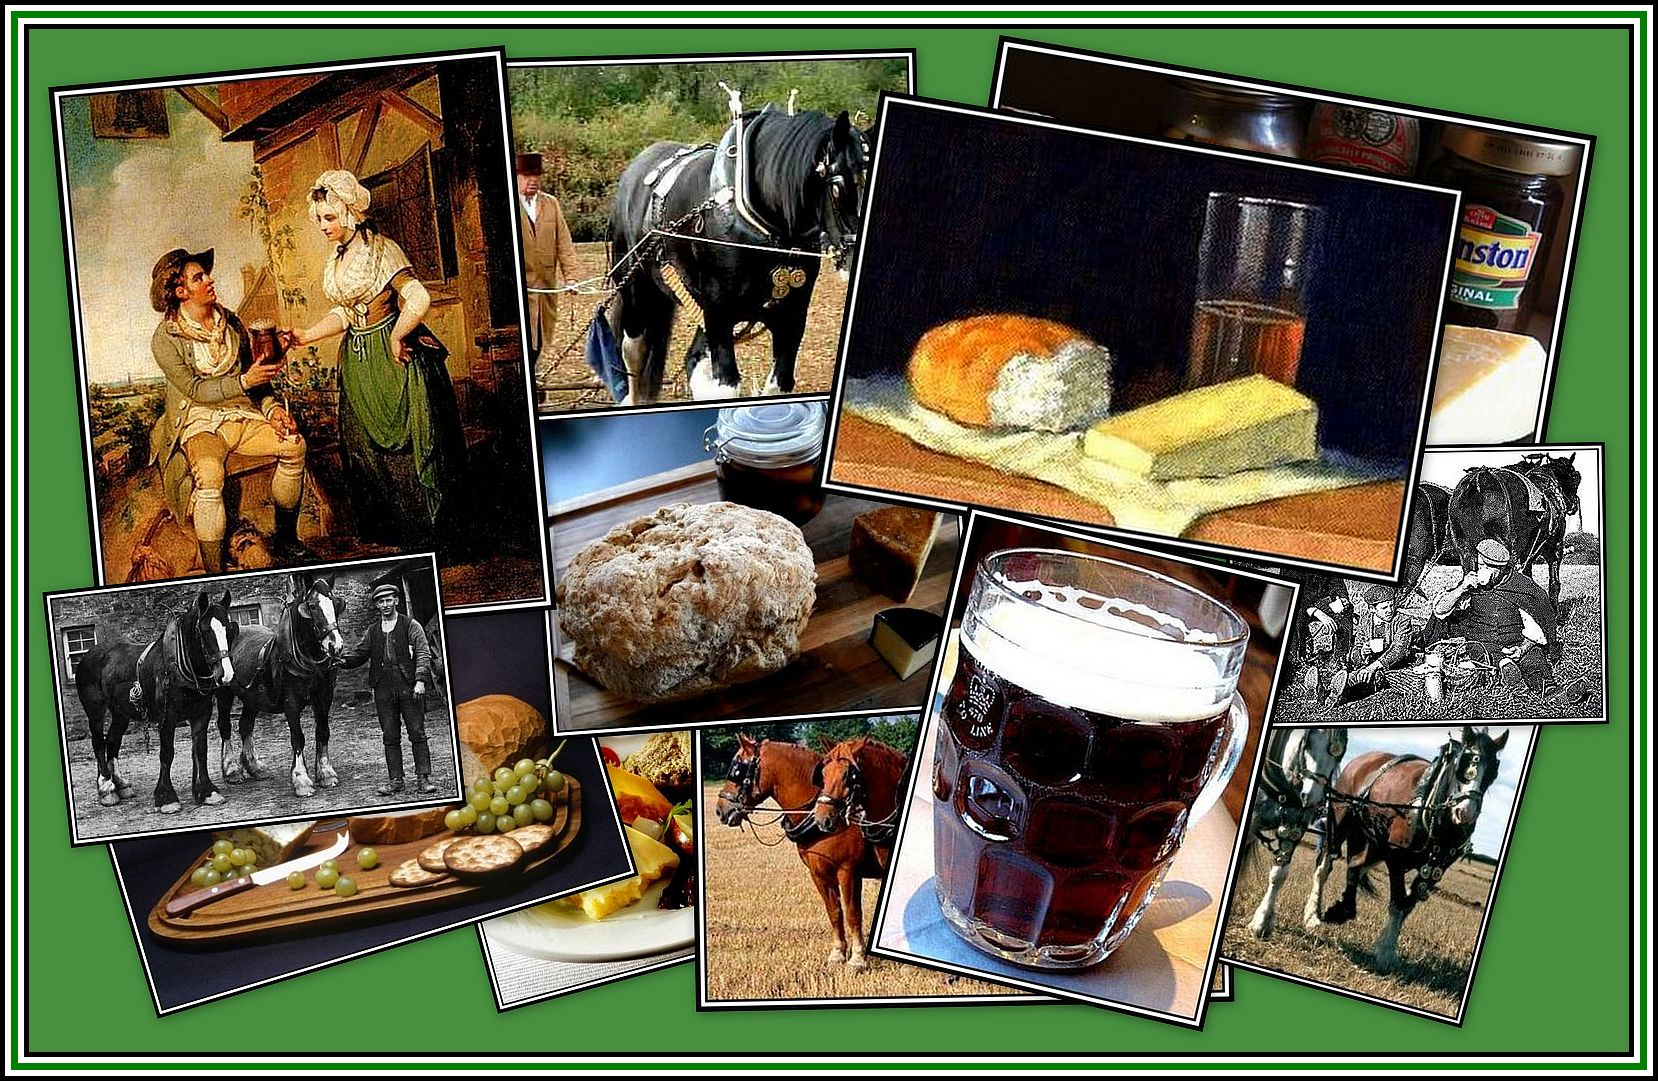 Ploughman's Lunch Collage